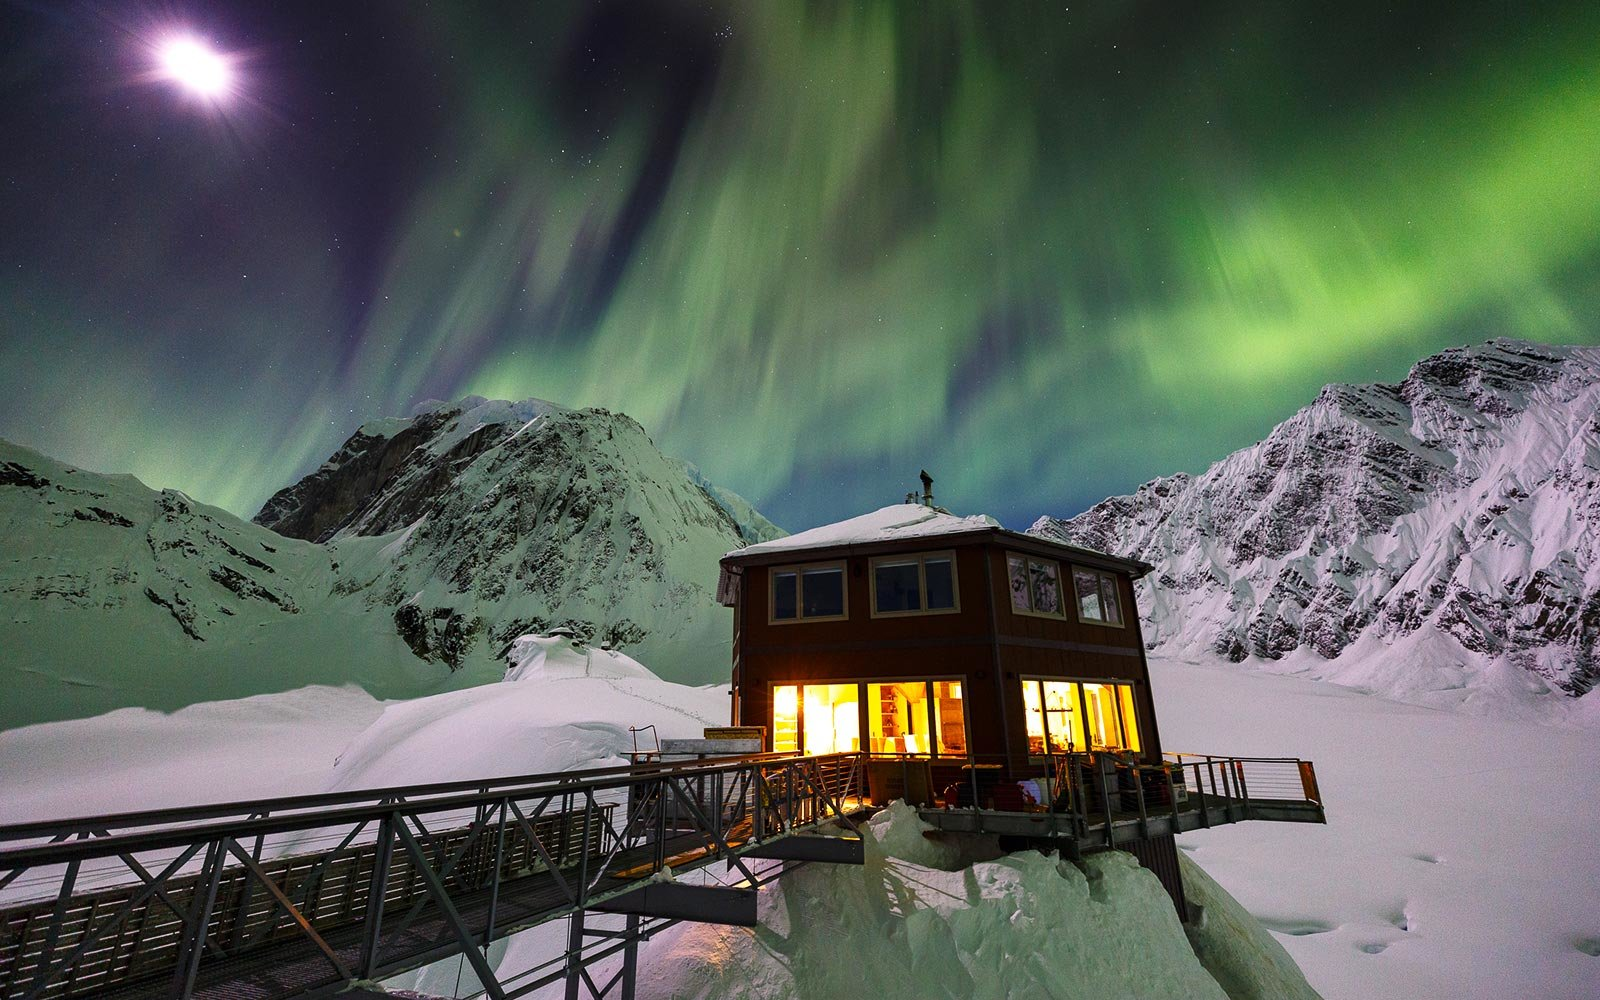 Fall Cabin Wallpaper A New Luxury Hotel Is Opening In The Middle Of An Alaskan